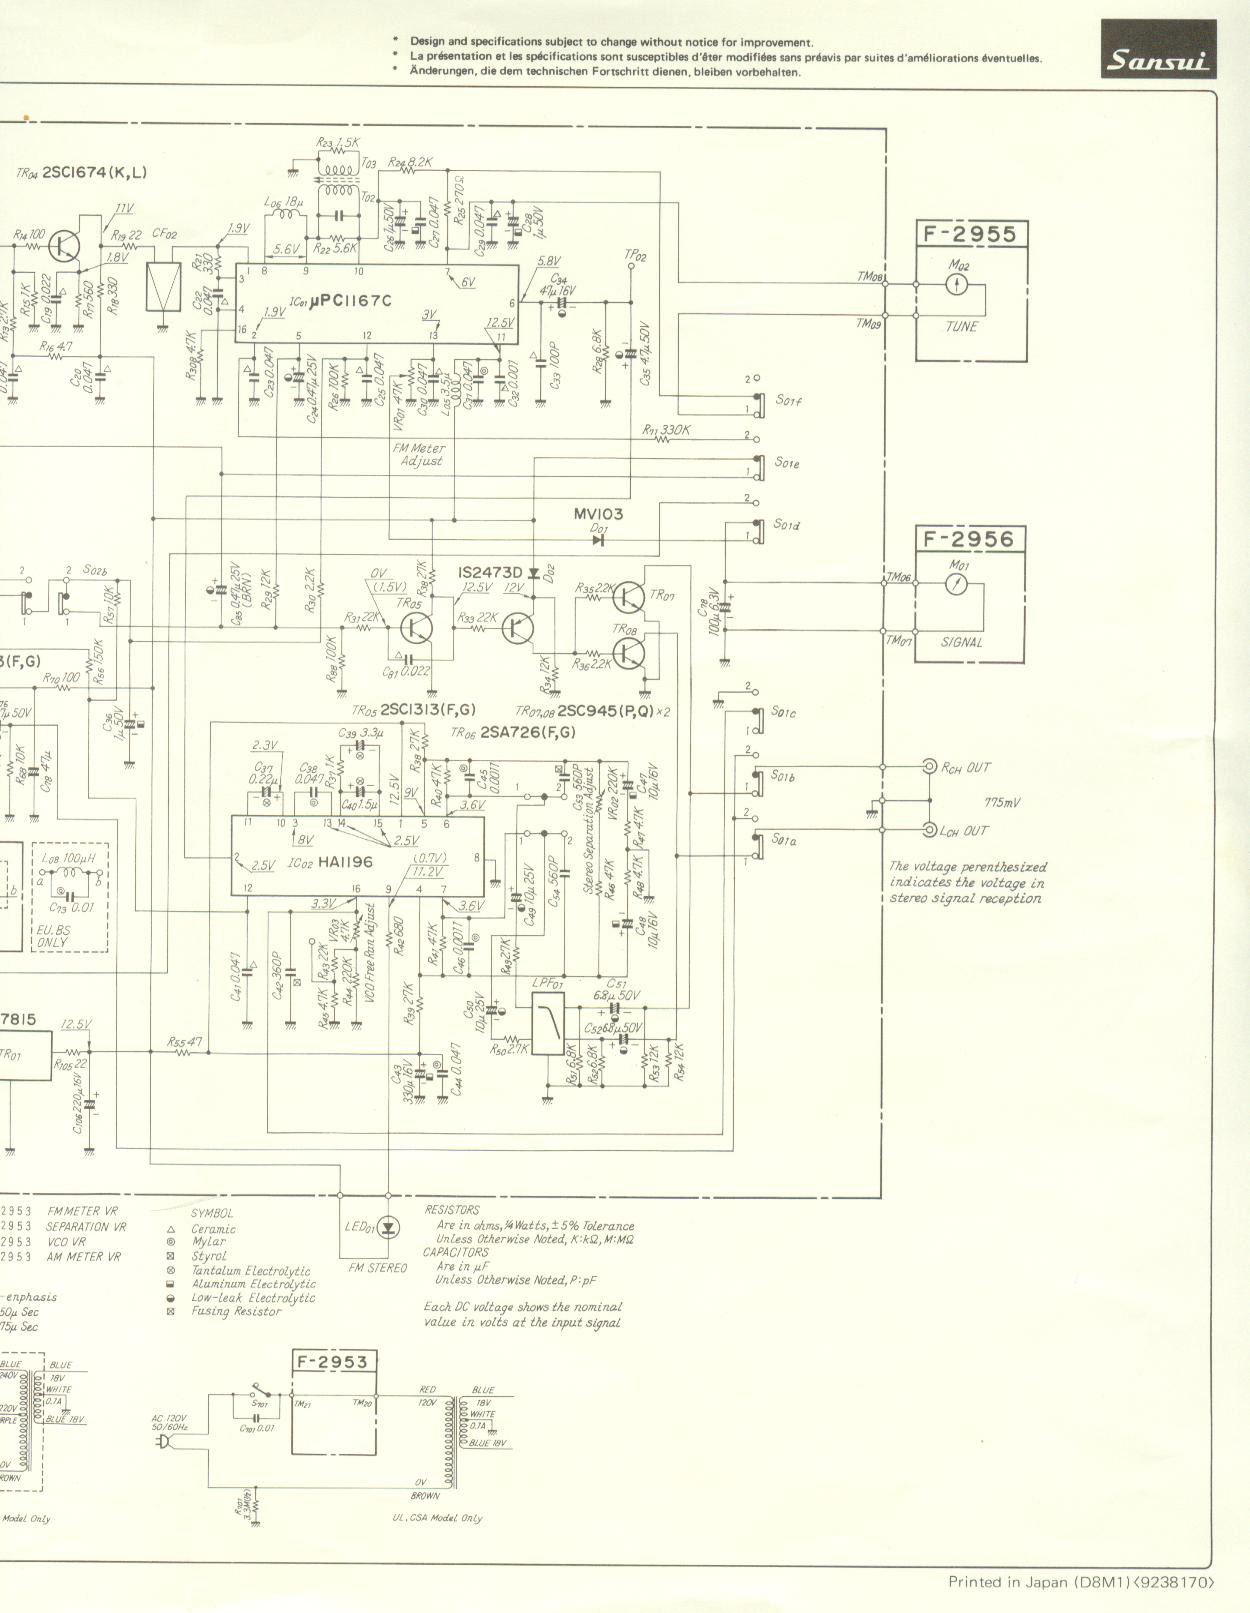 Tuner Information Center Sansui Tuners F G Block Diagram Tu 217 1978 190 Earlier Version Later Back Schematic Left